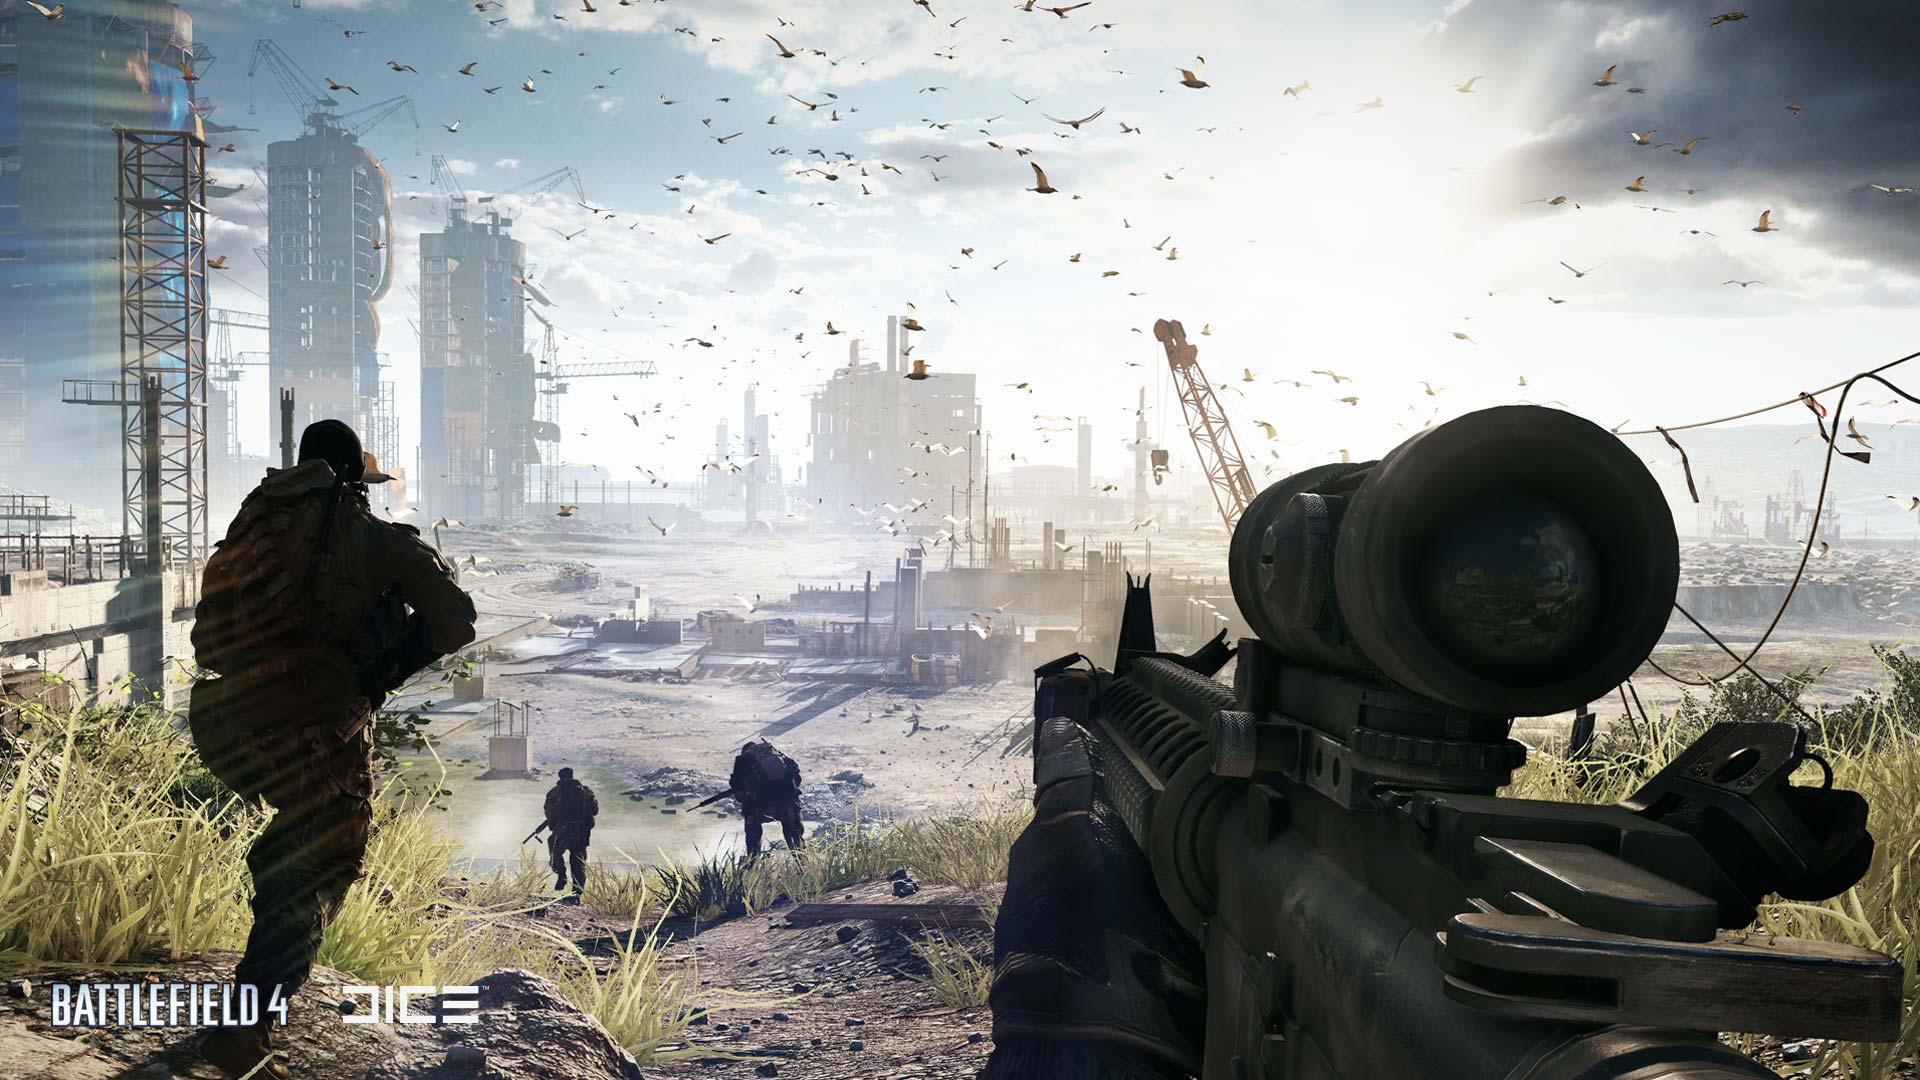 Battlefield 4 High Quality Background on Wallpapers Vista